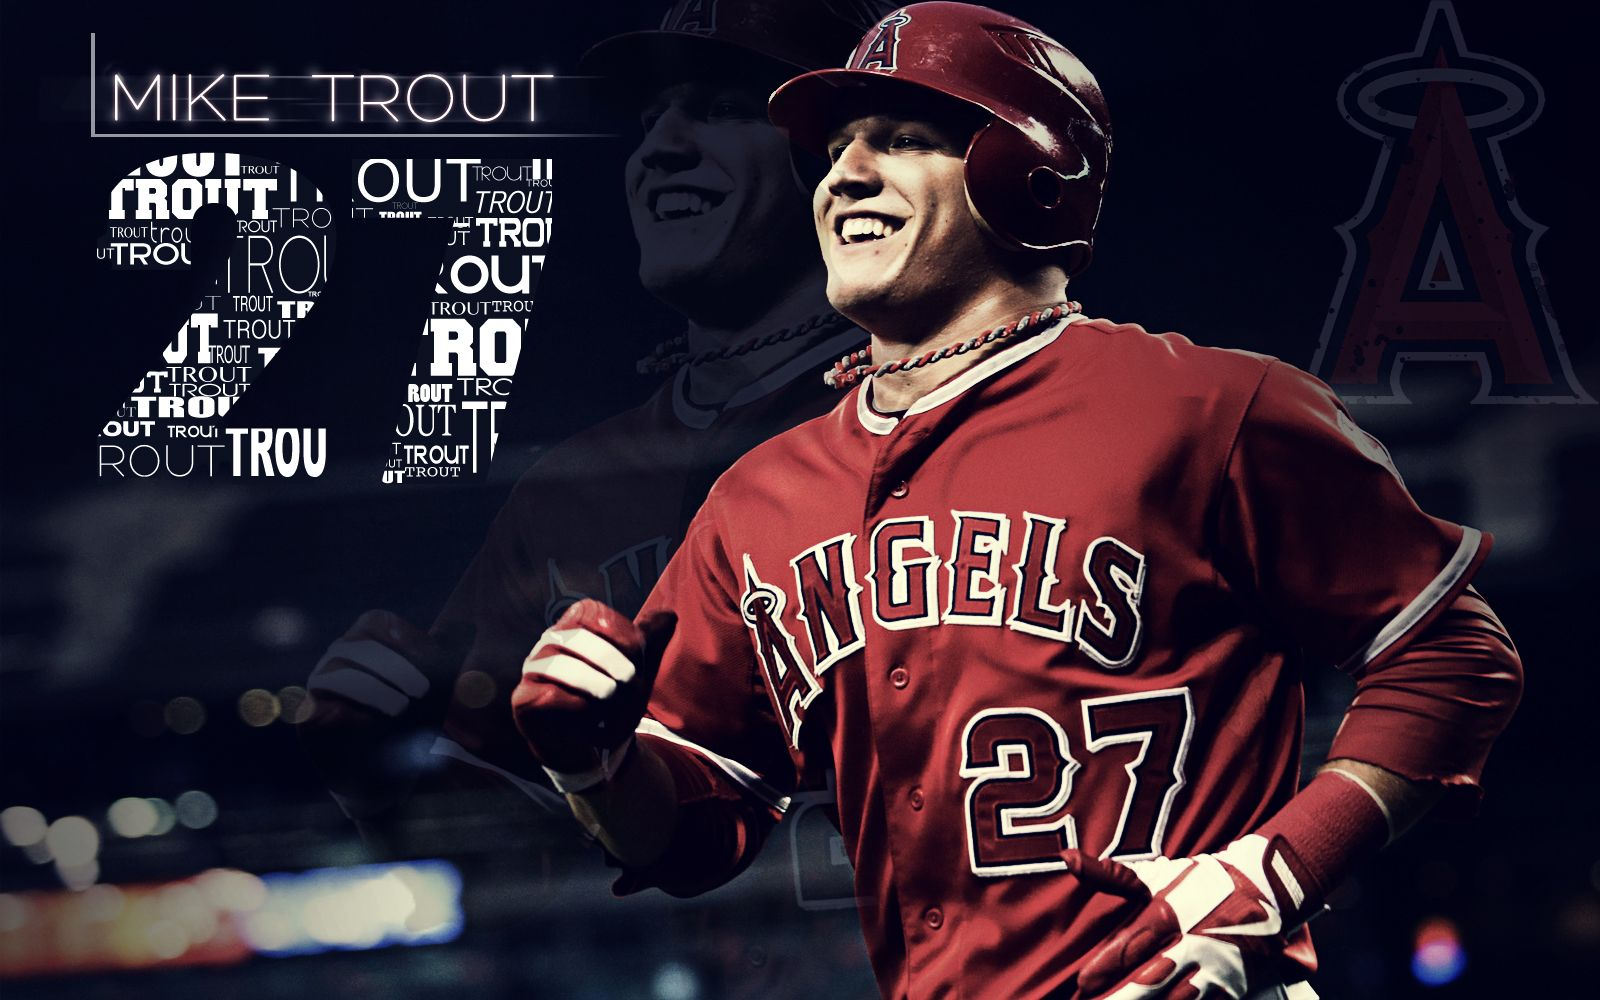 Mike Trout Wallpaper mike trout los angeles angels